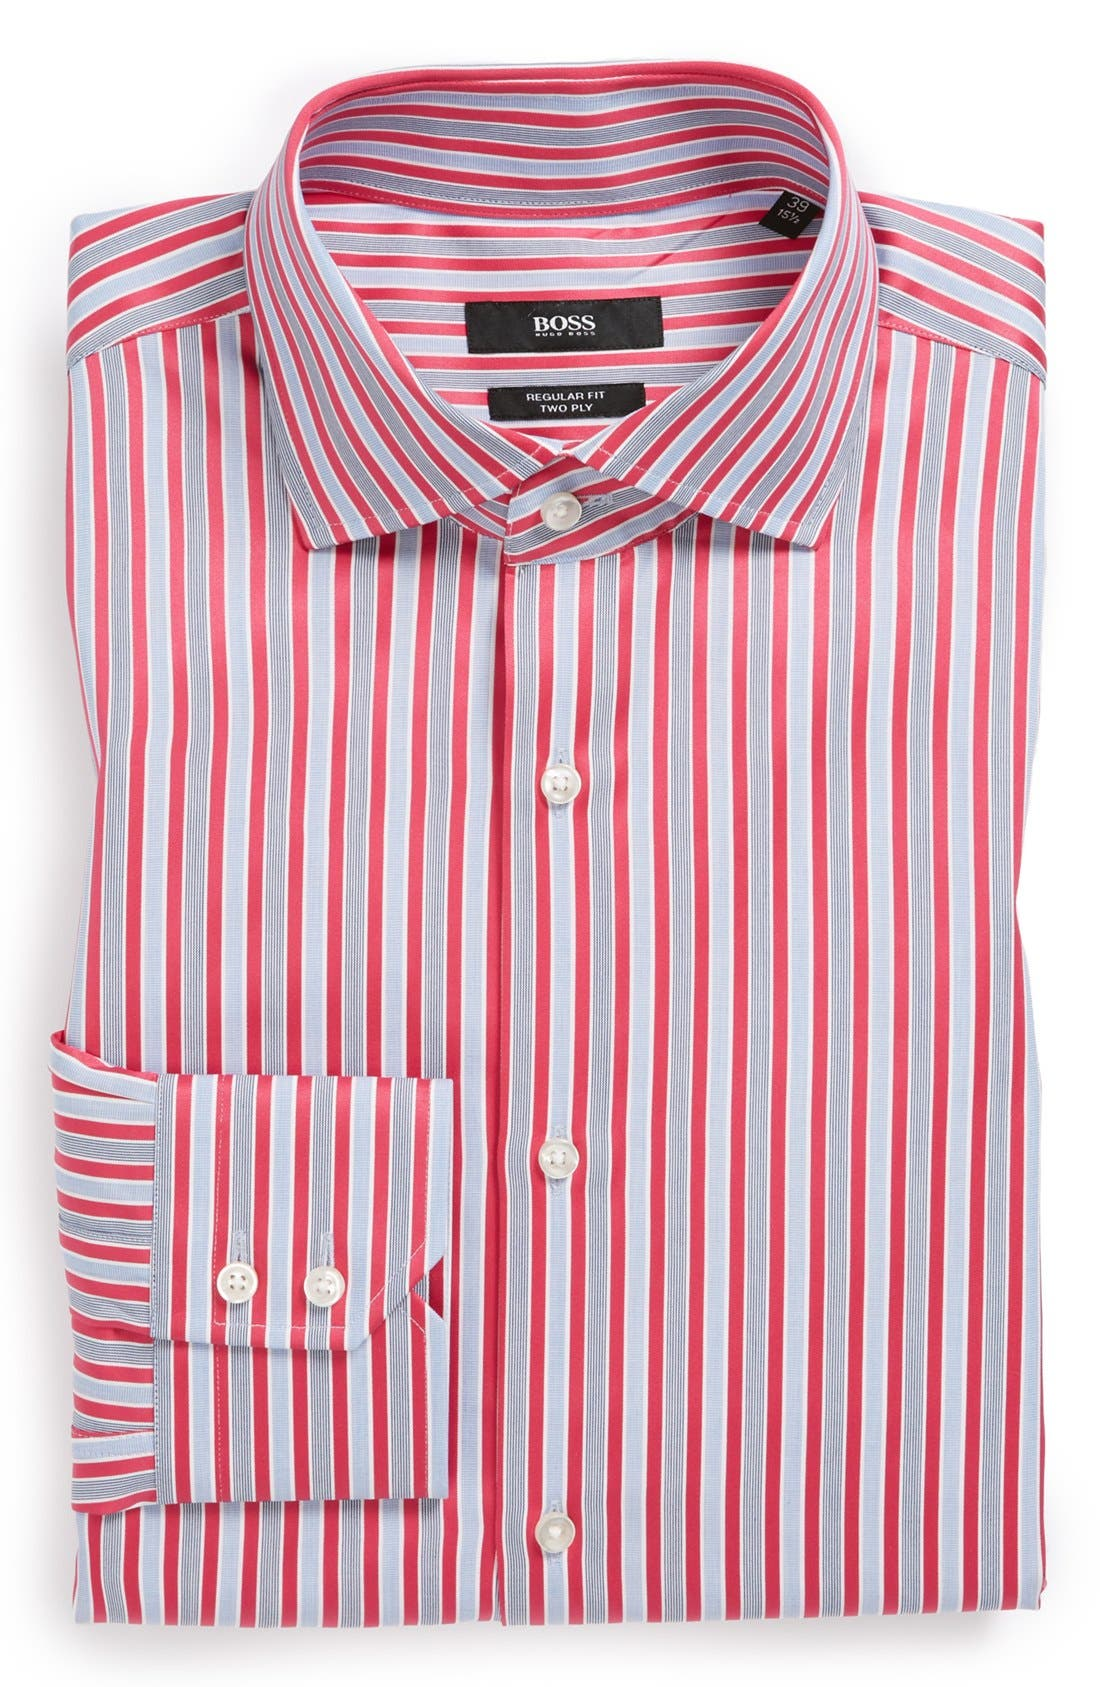 Main Image - BOSS HUGO BOSS 'Gerald' WW Regular Fit Dress Shirt